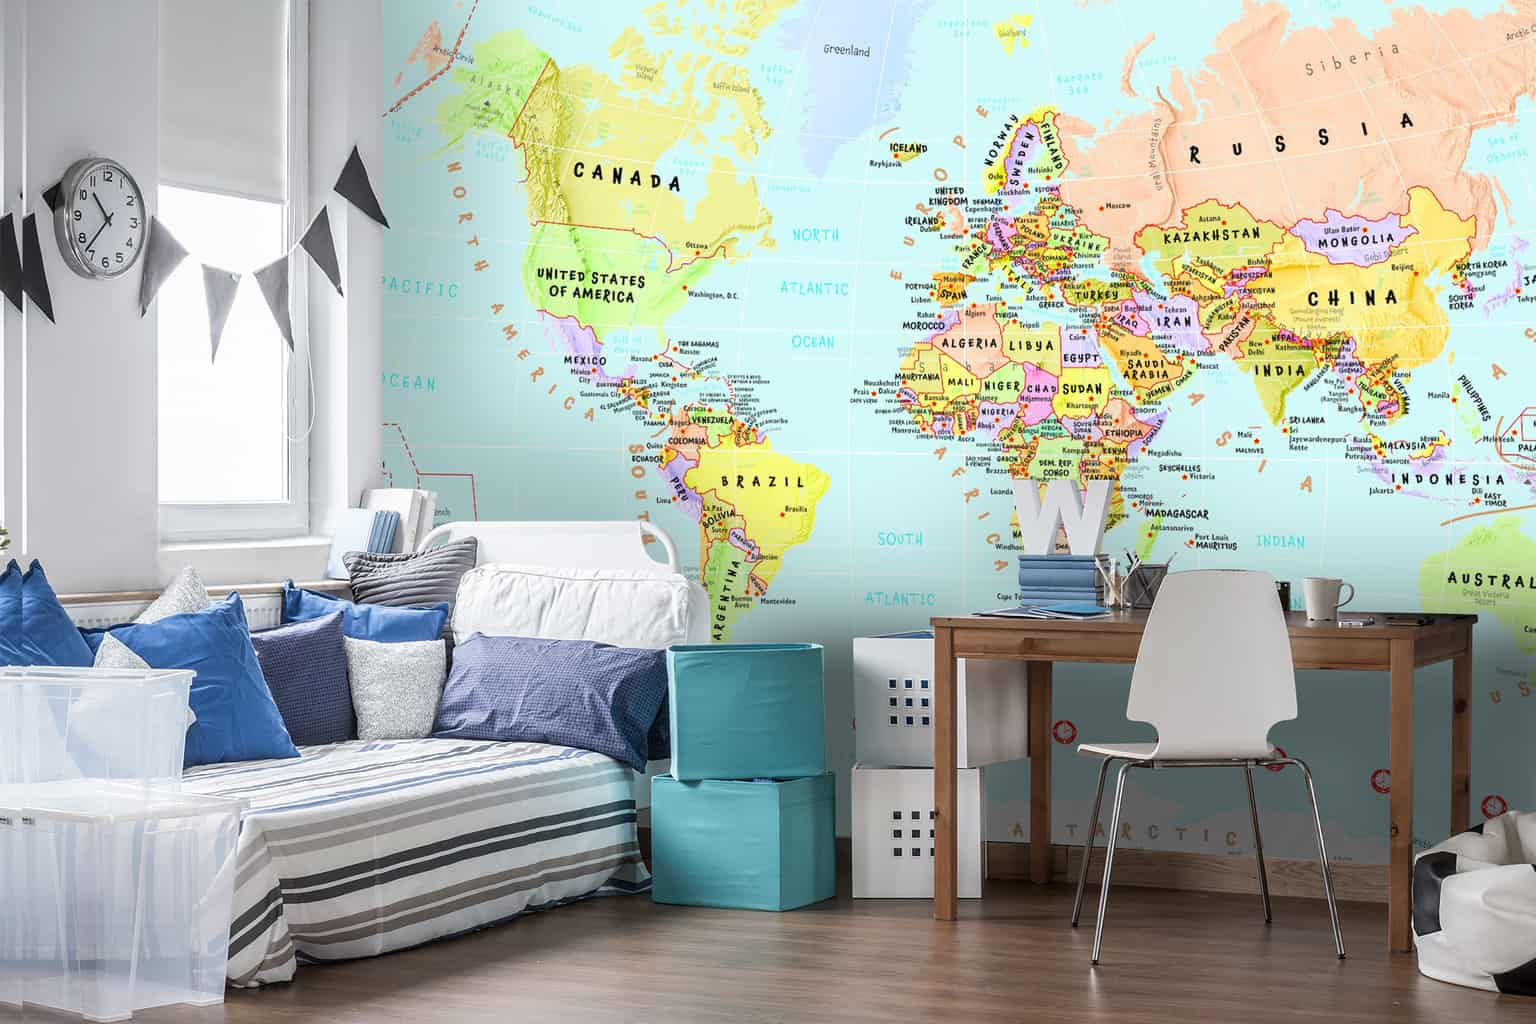 5 wonderful childrens wall murals to teach them about the world childrens wall murals gumiabroncs Images